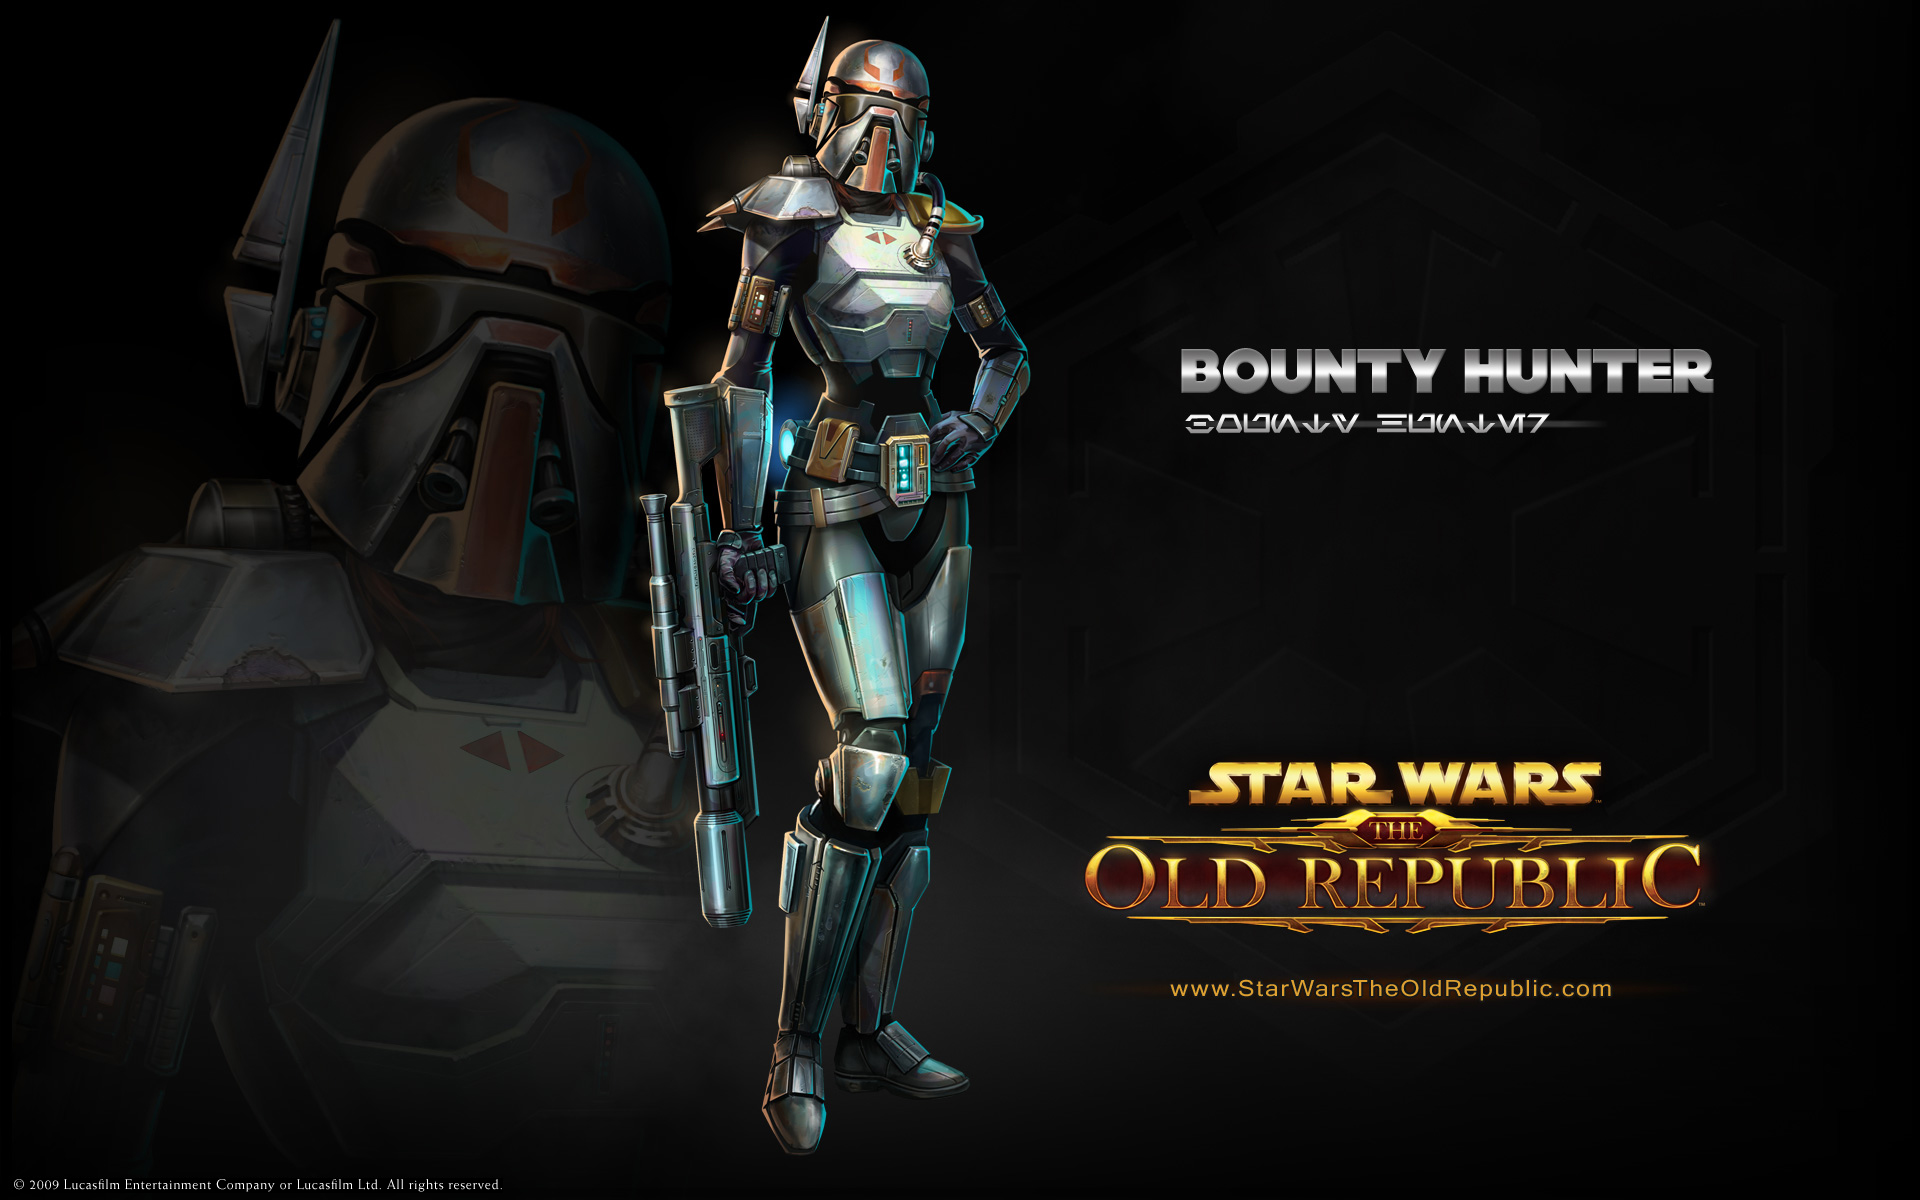 Star Wars The Old Republic: Bounty Hunter Reveal